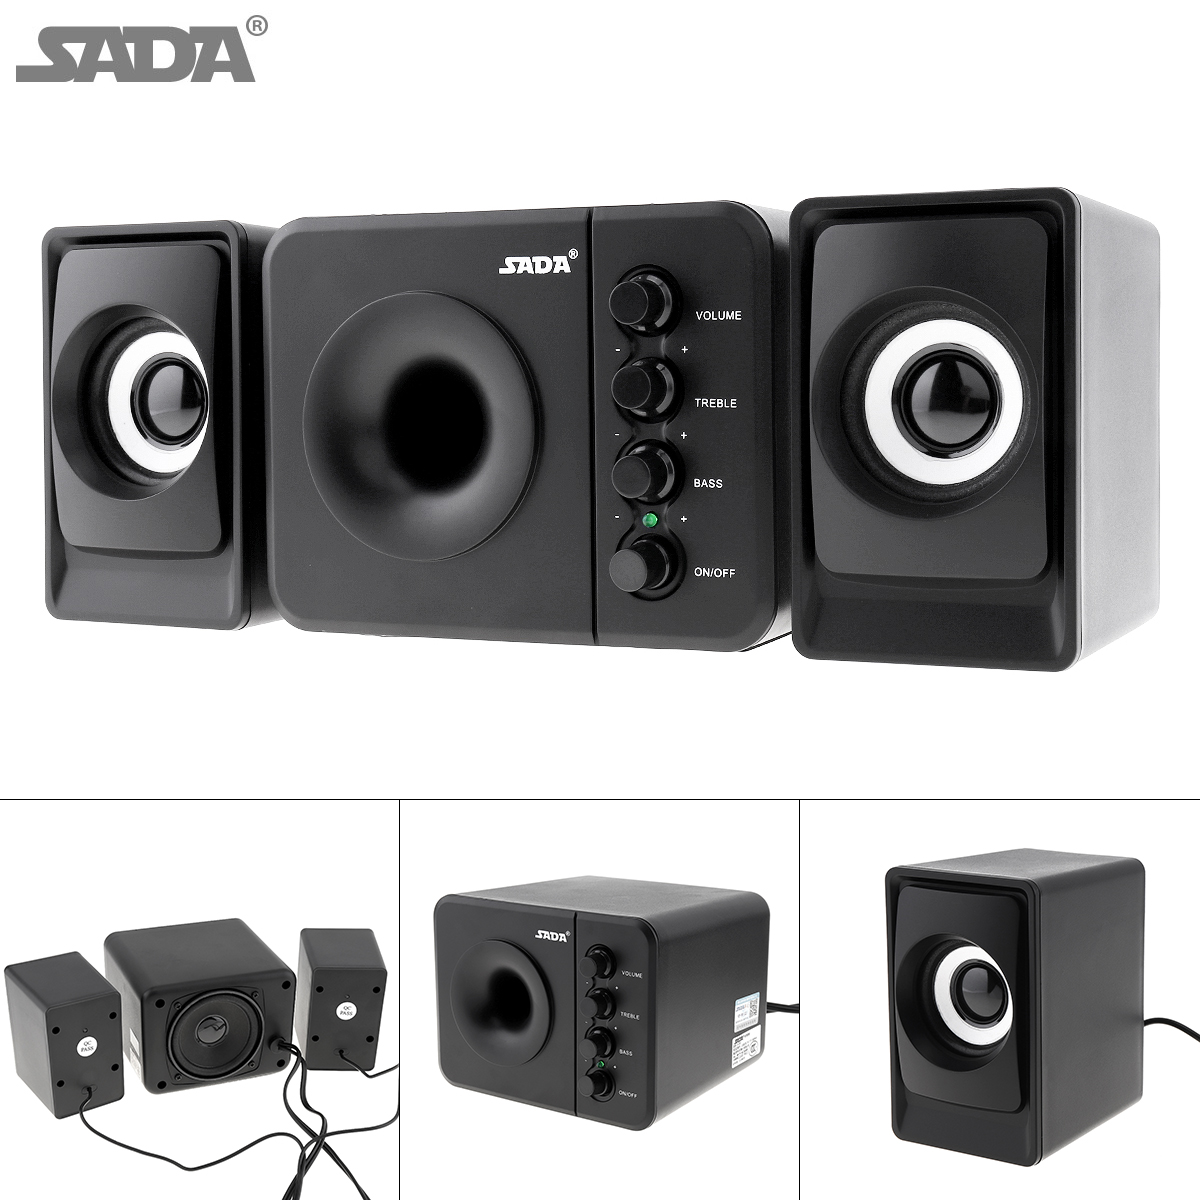 SADA D-205 Newest Full Range 3D Stereo Subwoofer 100% Bass PC Speaker Portable Music DJ USB Computer Speakers for Laptop TV 1